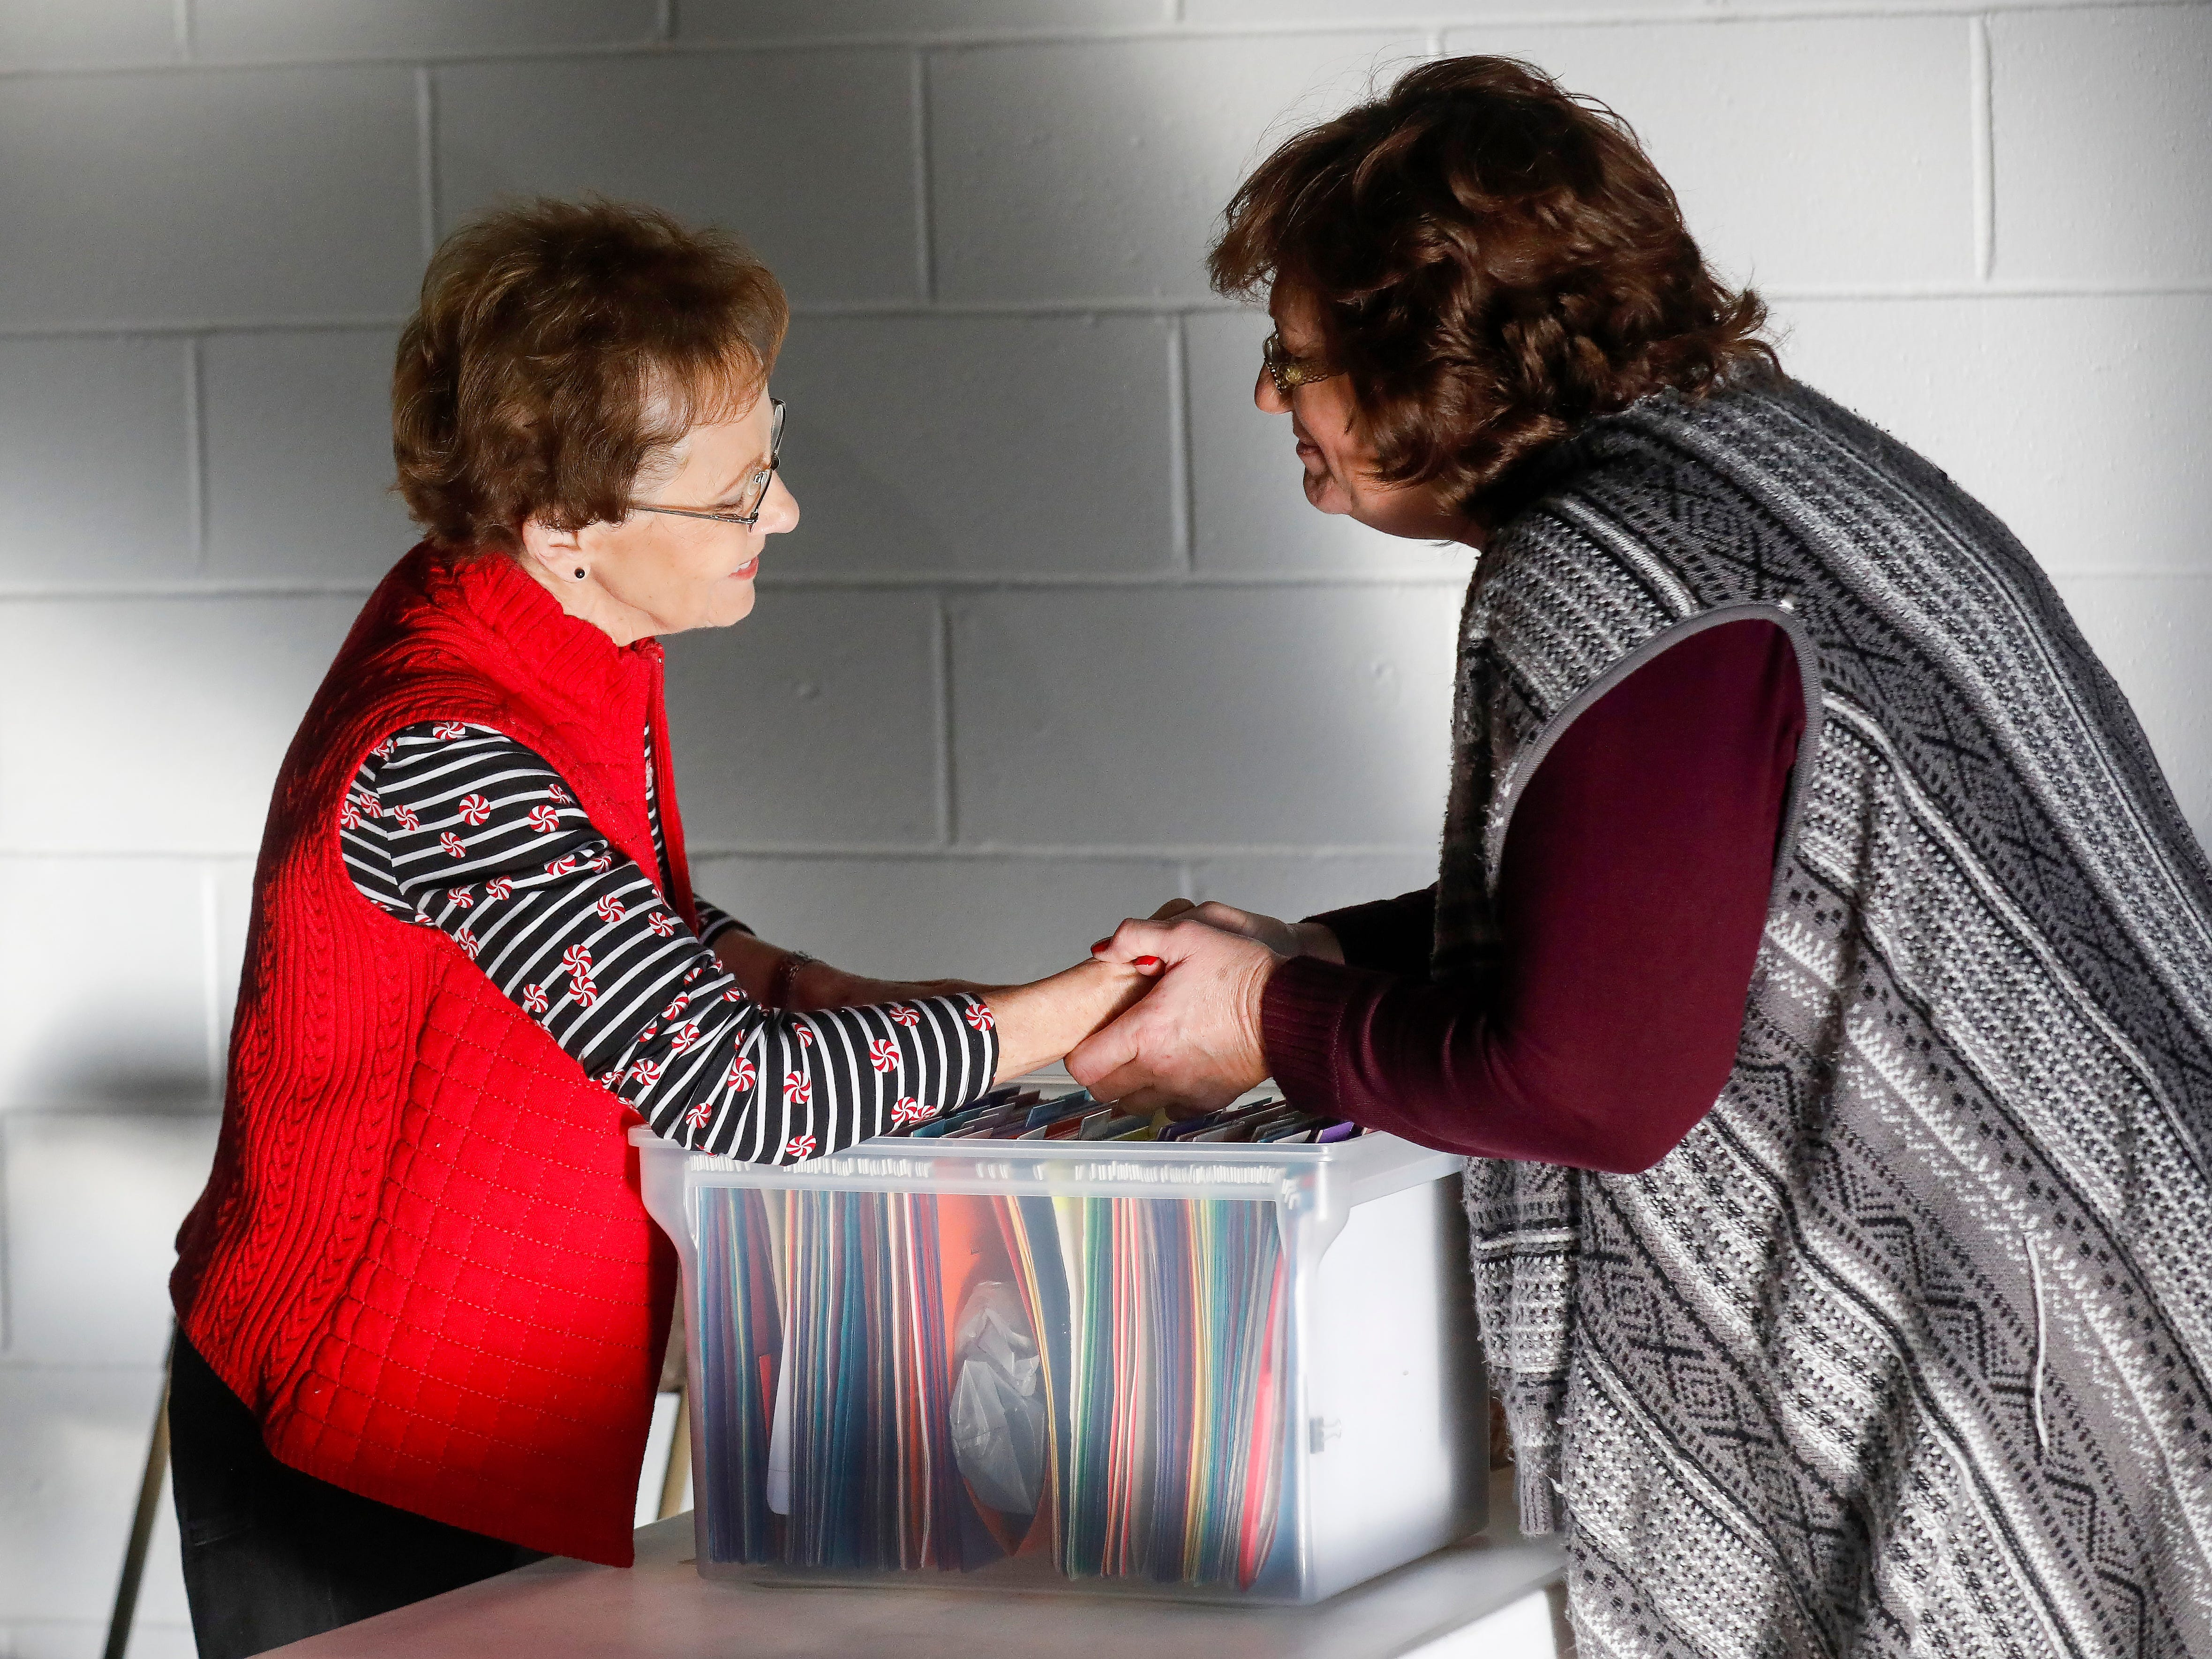 Lorene Guy, right, thanks Sheryl Wachter as she is being checked in during the Share Your Christmas distribution at Crosslines on Tuesday, Dec. 18, 2018. Guy was receiving gifts for her two grandchildren.